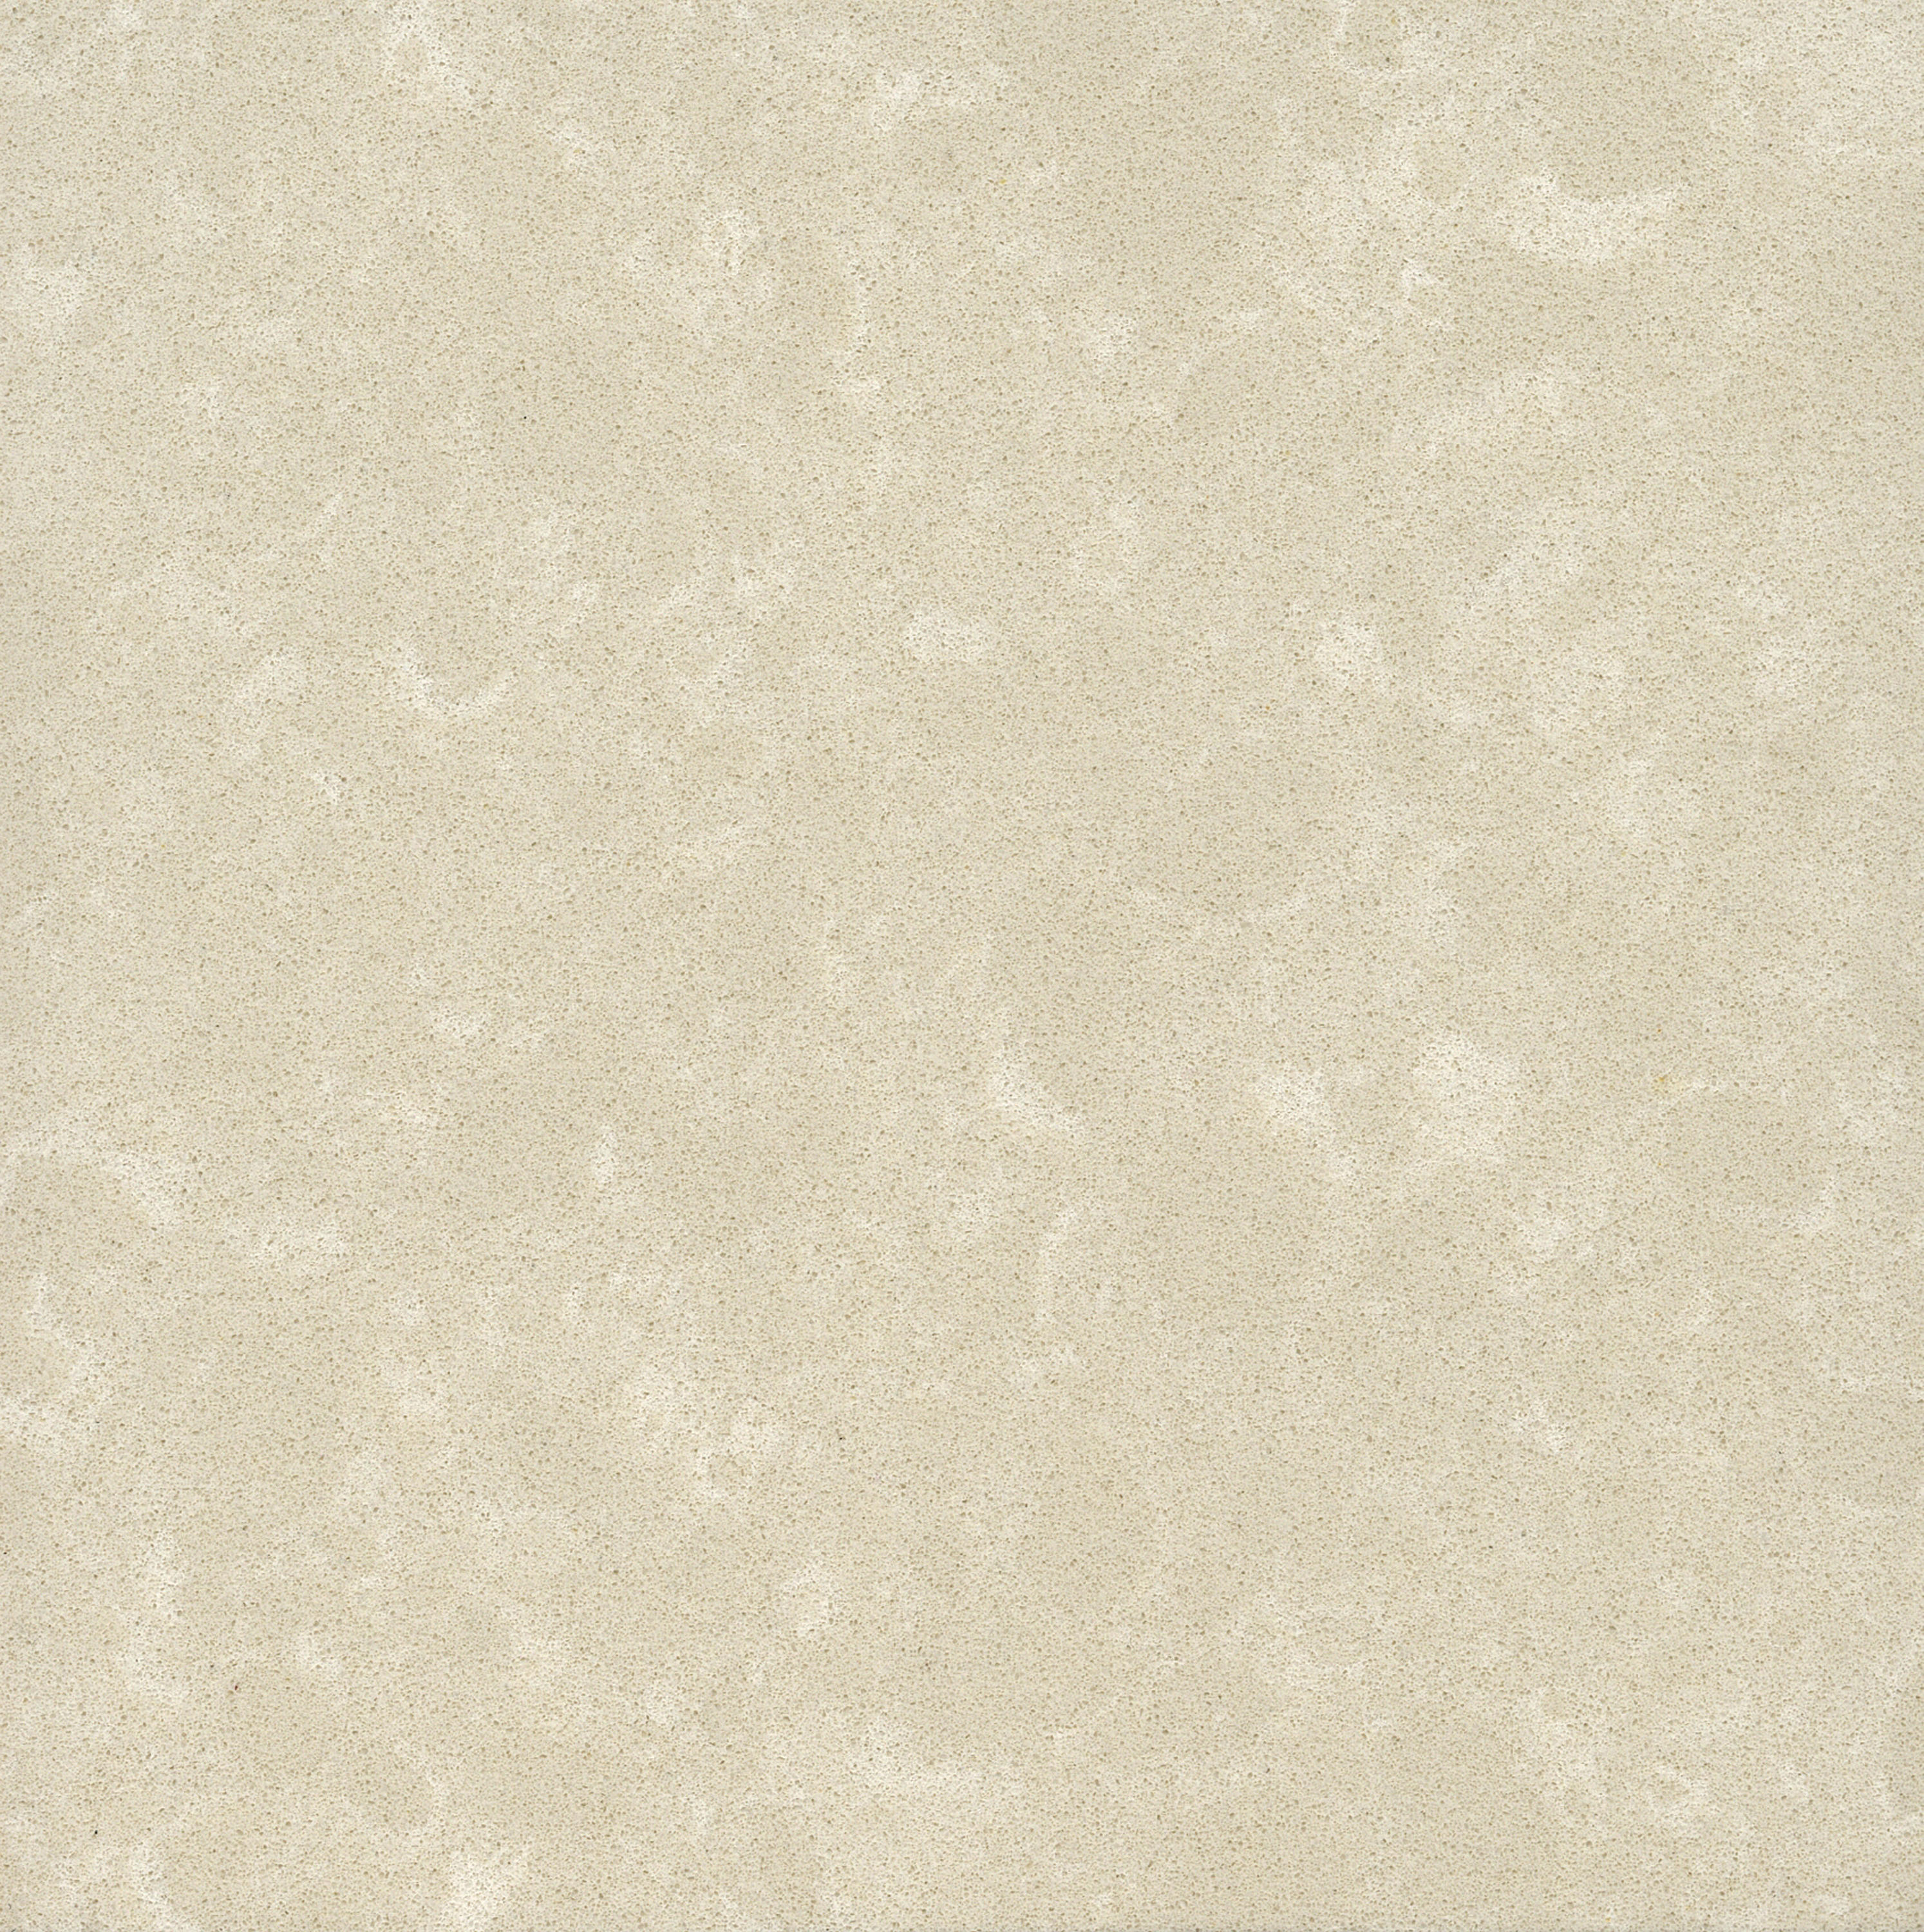 Silestone Tigris Sand Mineral Composite Panels From